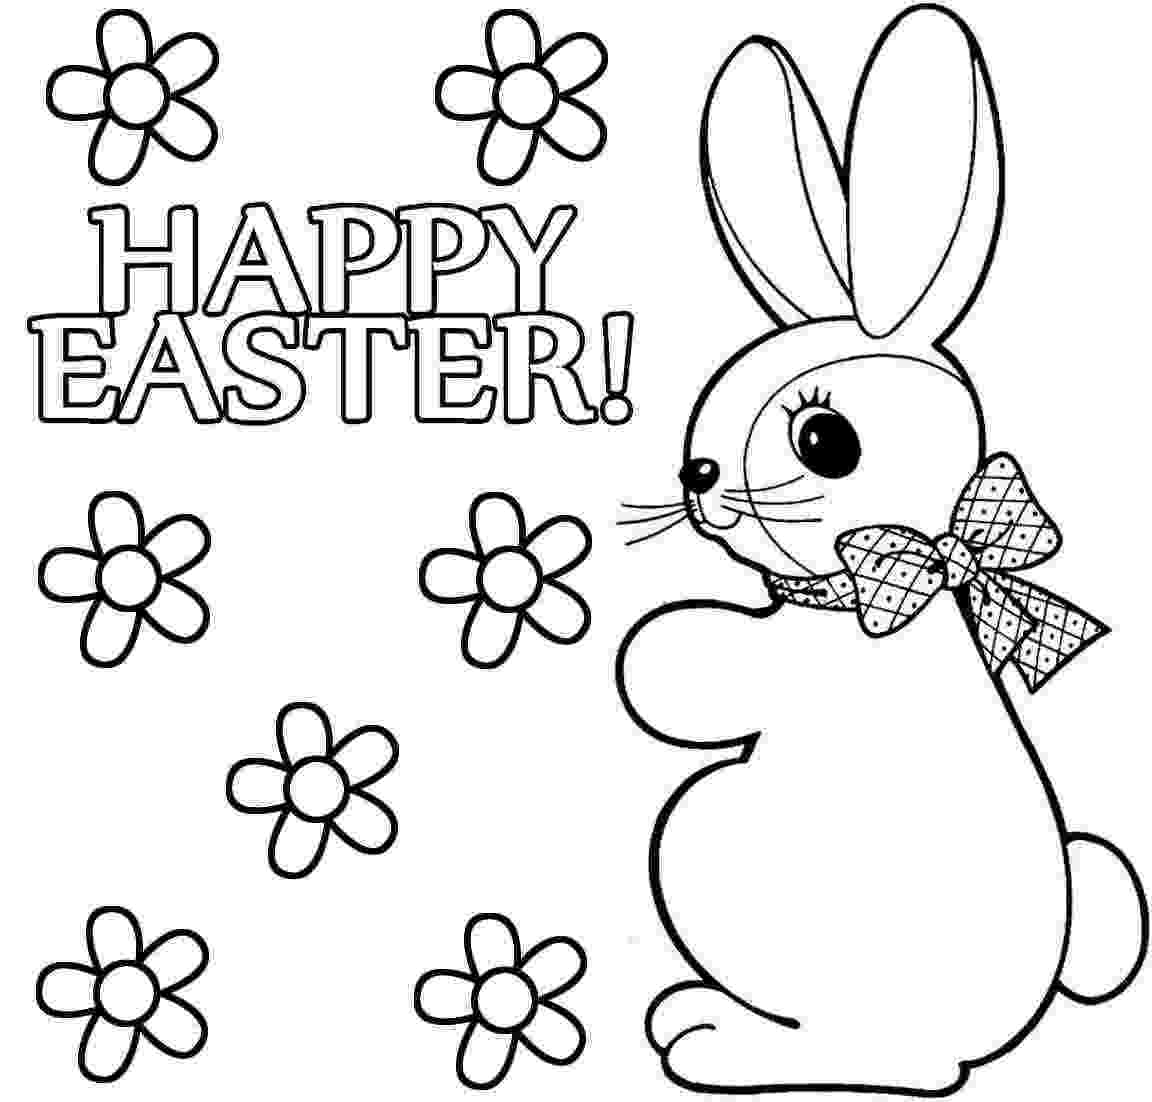 bunny coloring page easter bunny coloring pages to print to download and print bunny coloring page